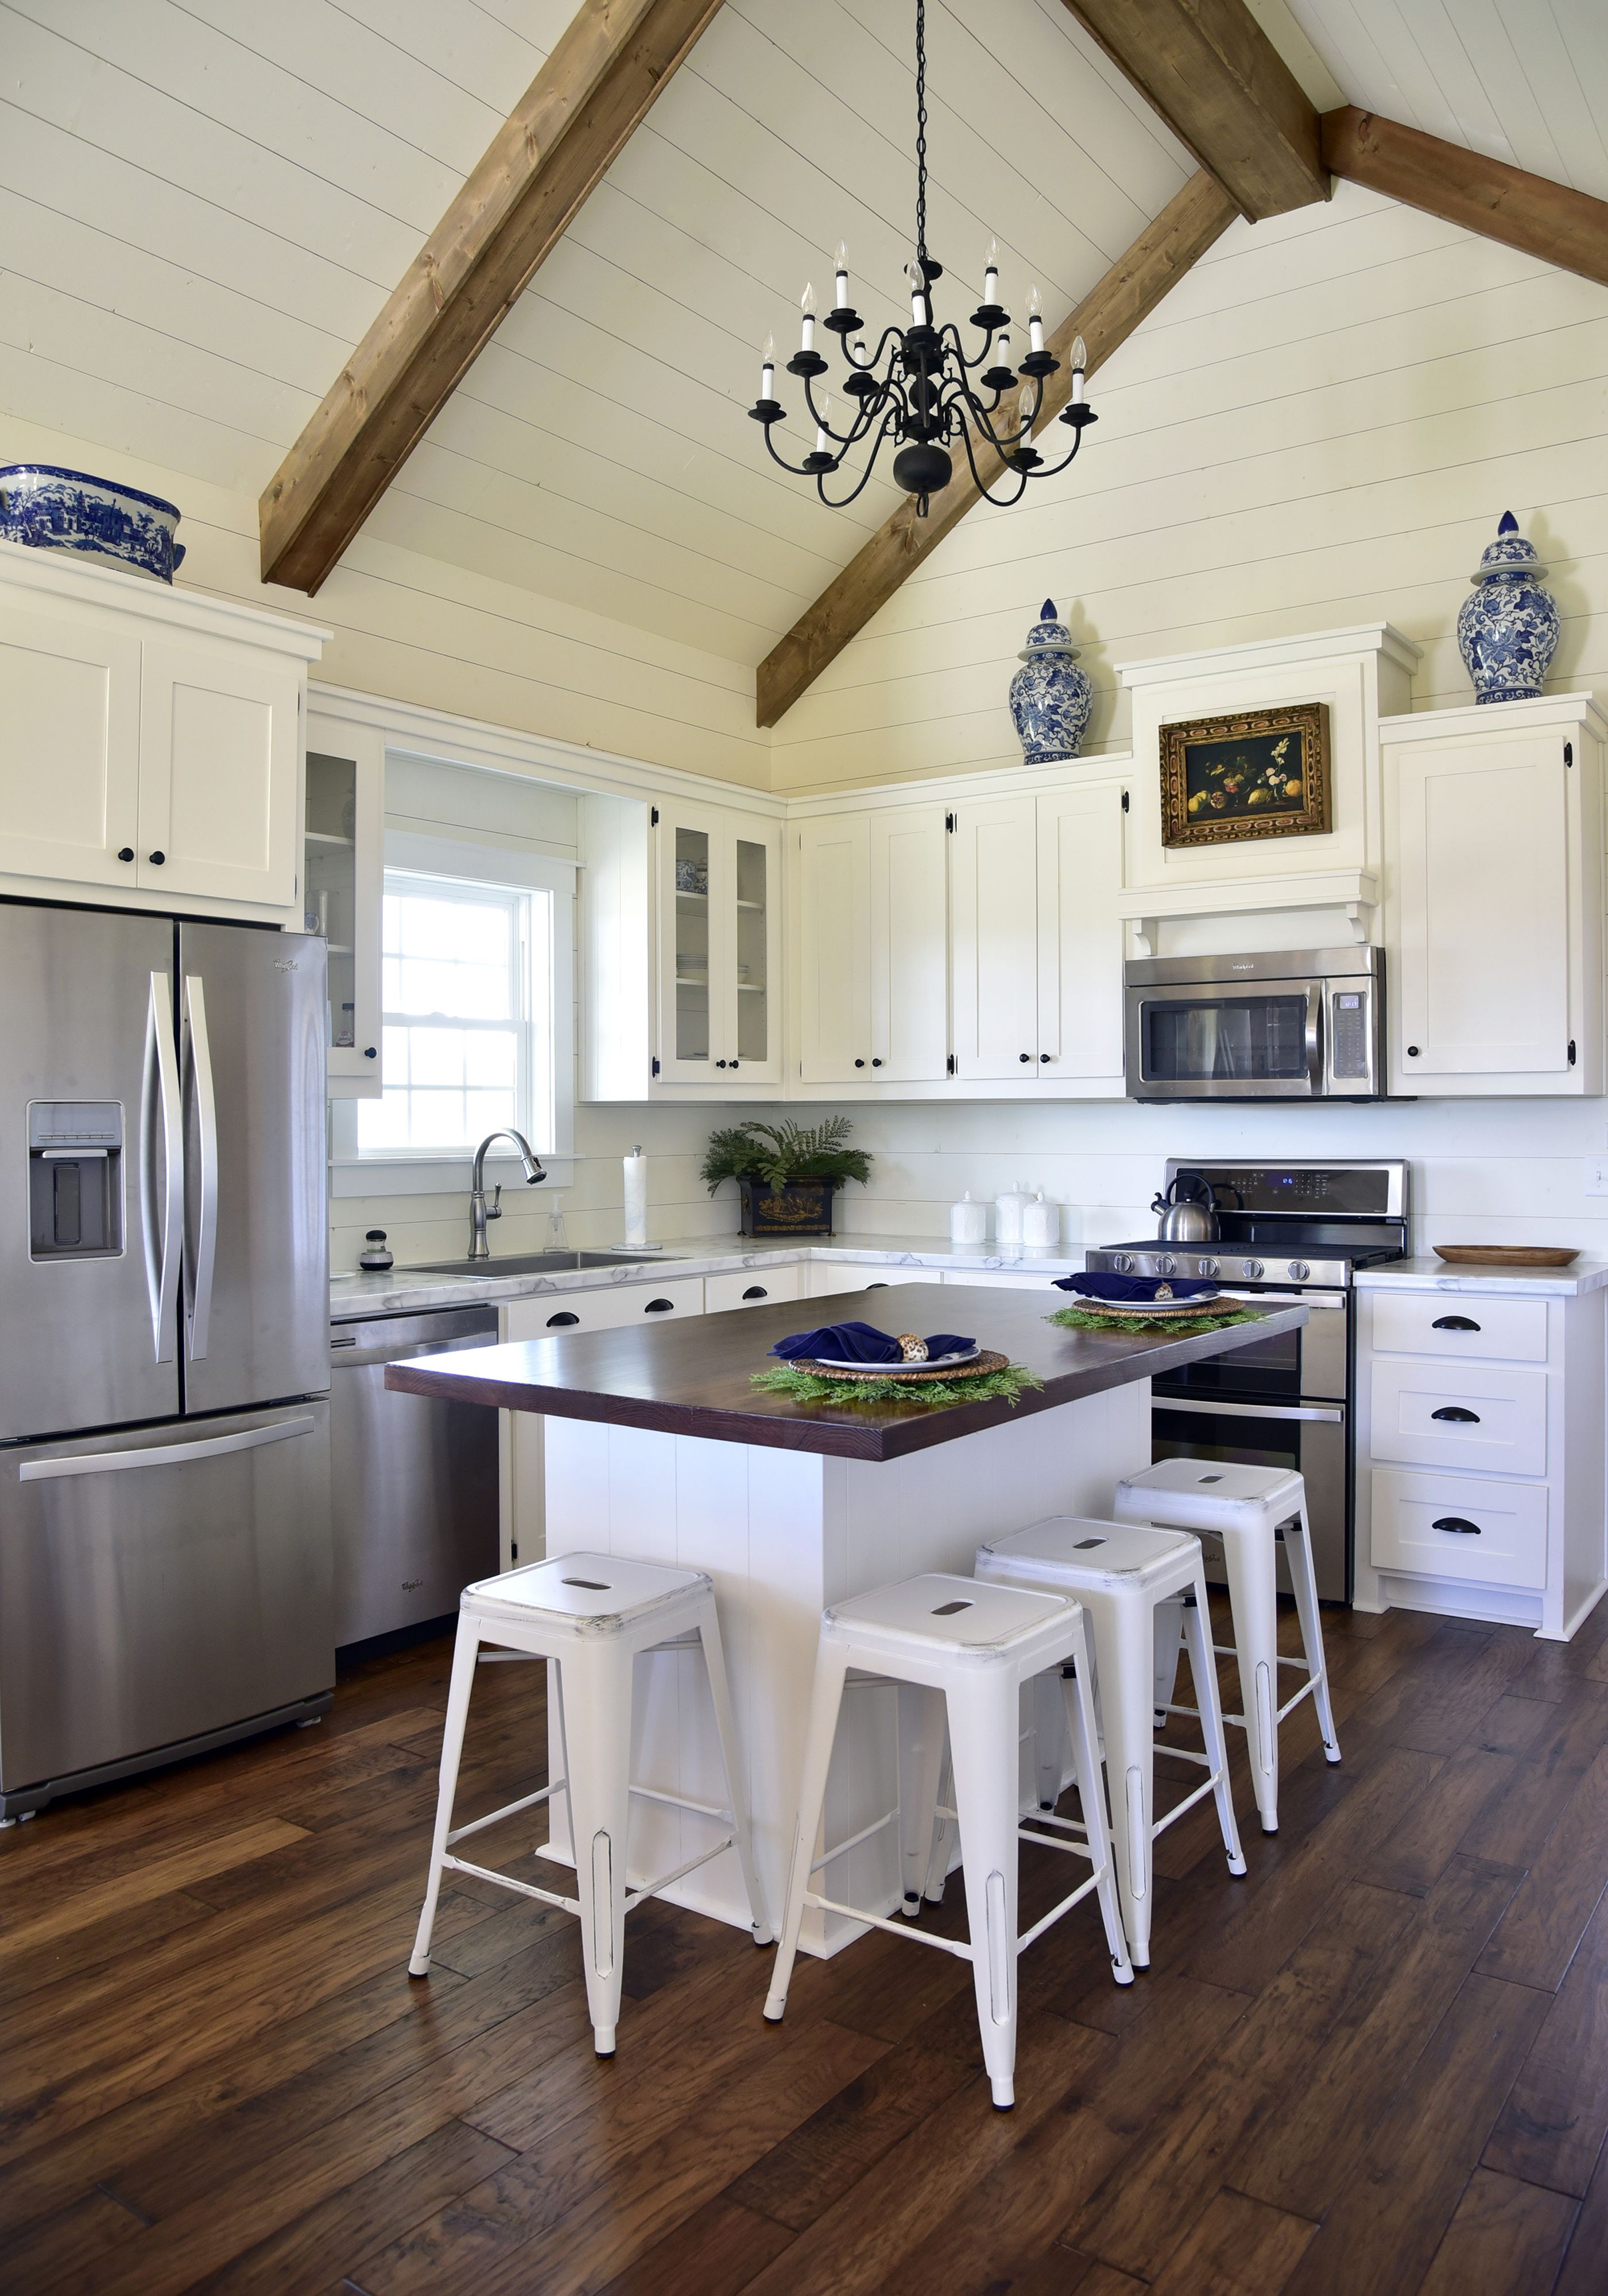 Our Town Plans 208 Hickory Road Beautiful Open Kitchen With Vaulted Ceiling In A Revised Versi Kitchen Remodel Small Vaulted Ceiling Kitchen Kitchen Layout